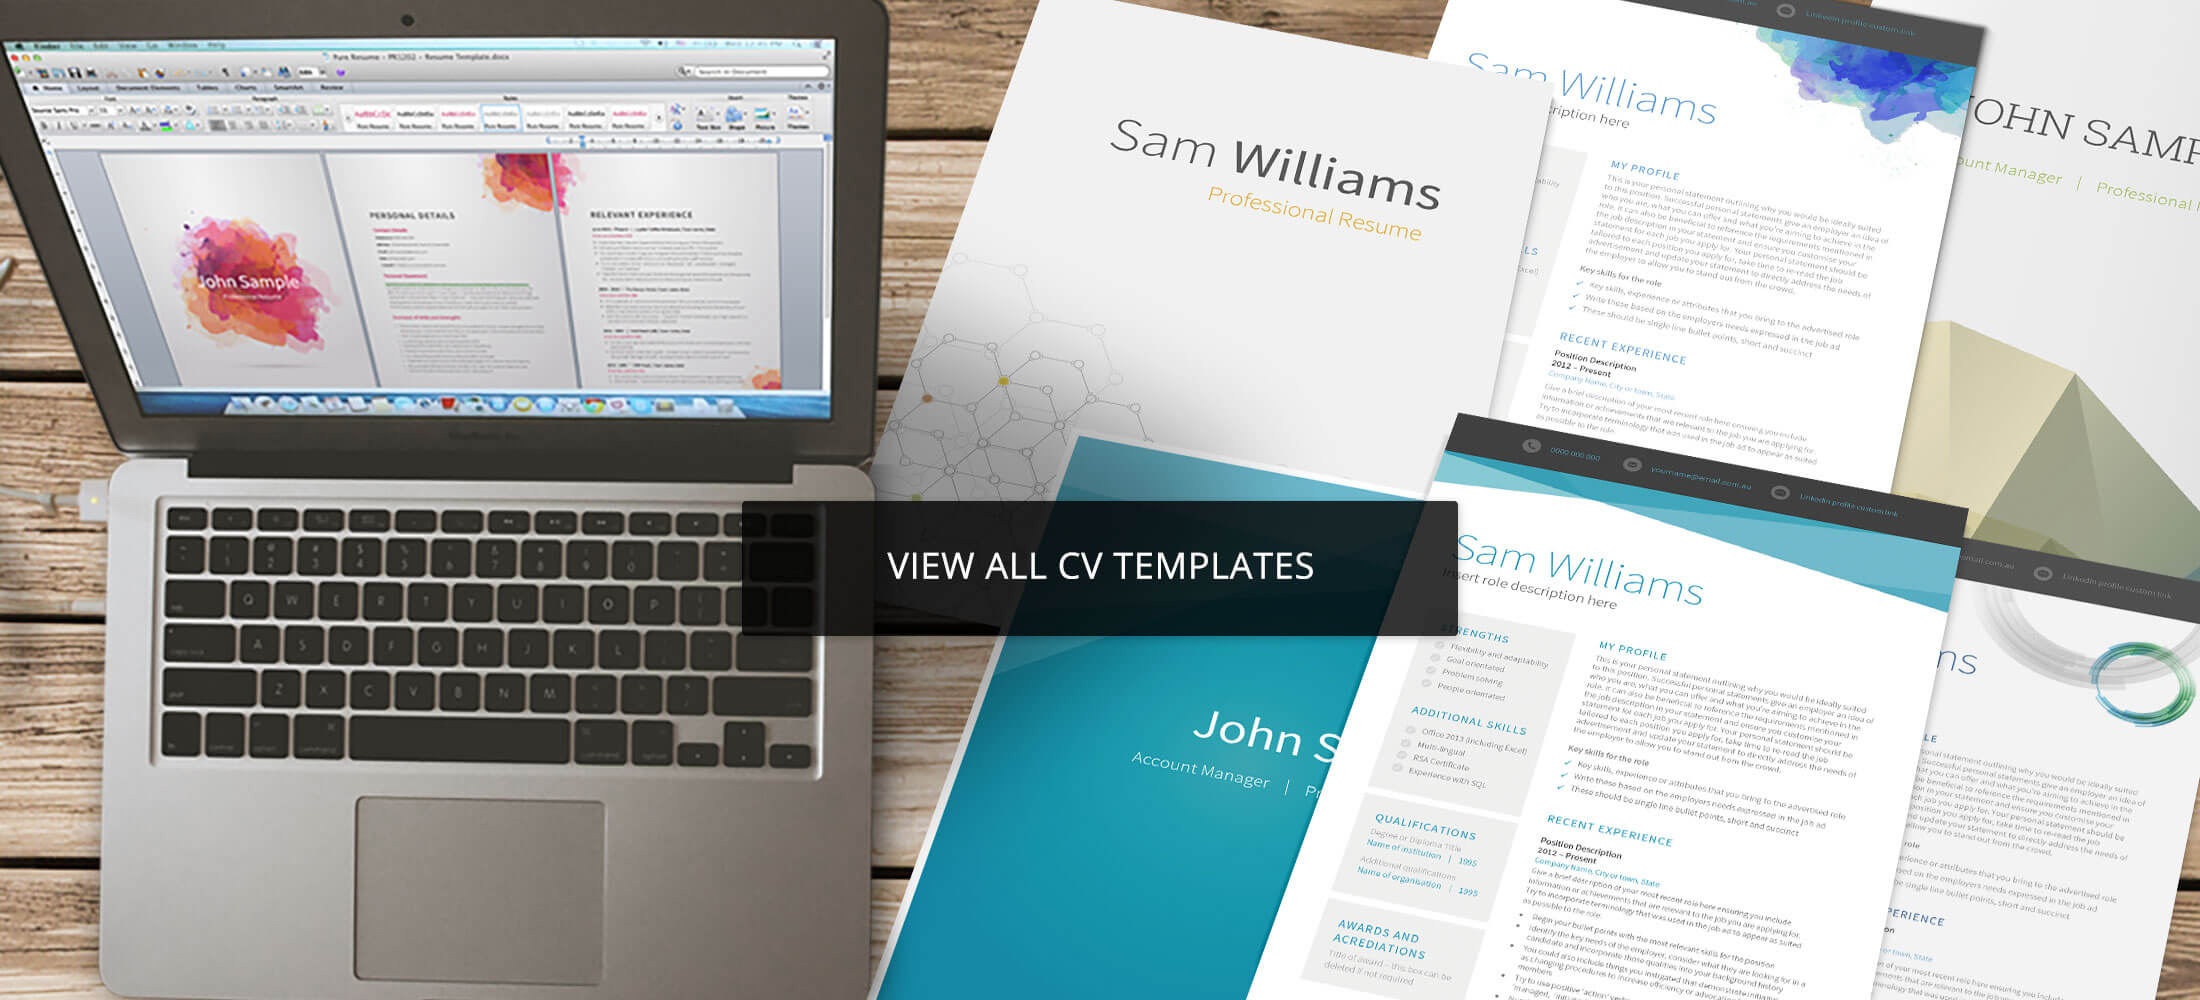 View-All-CV-Templates-hires.jpg